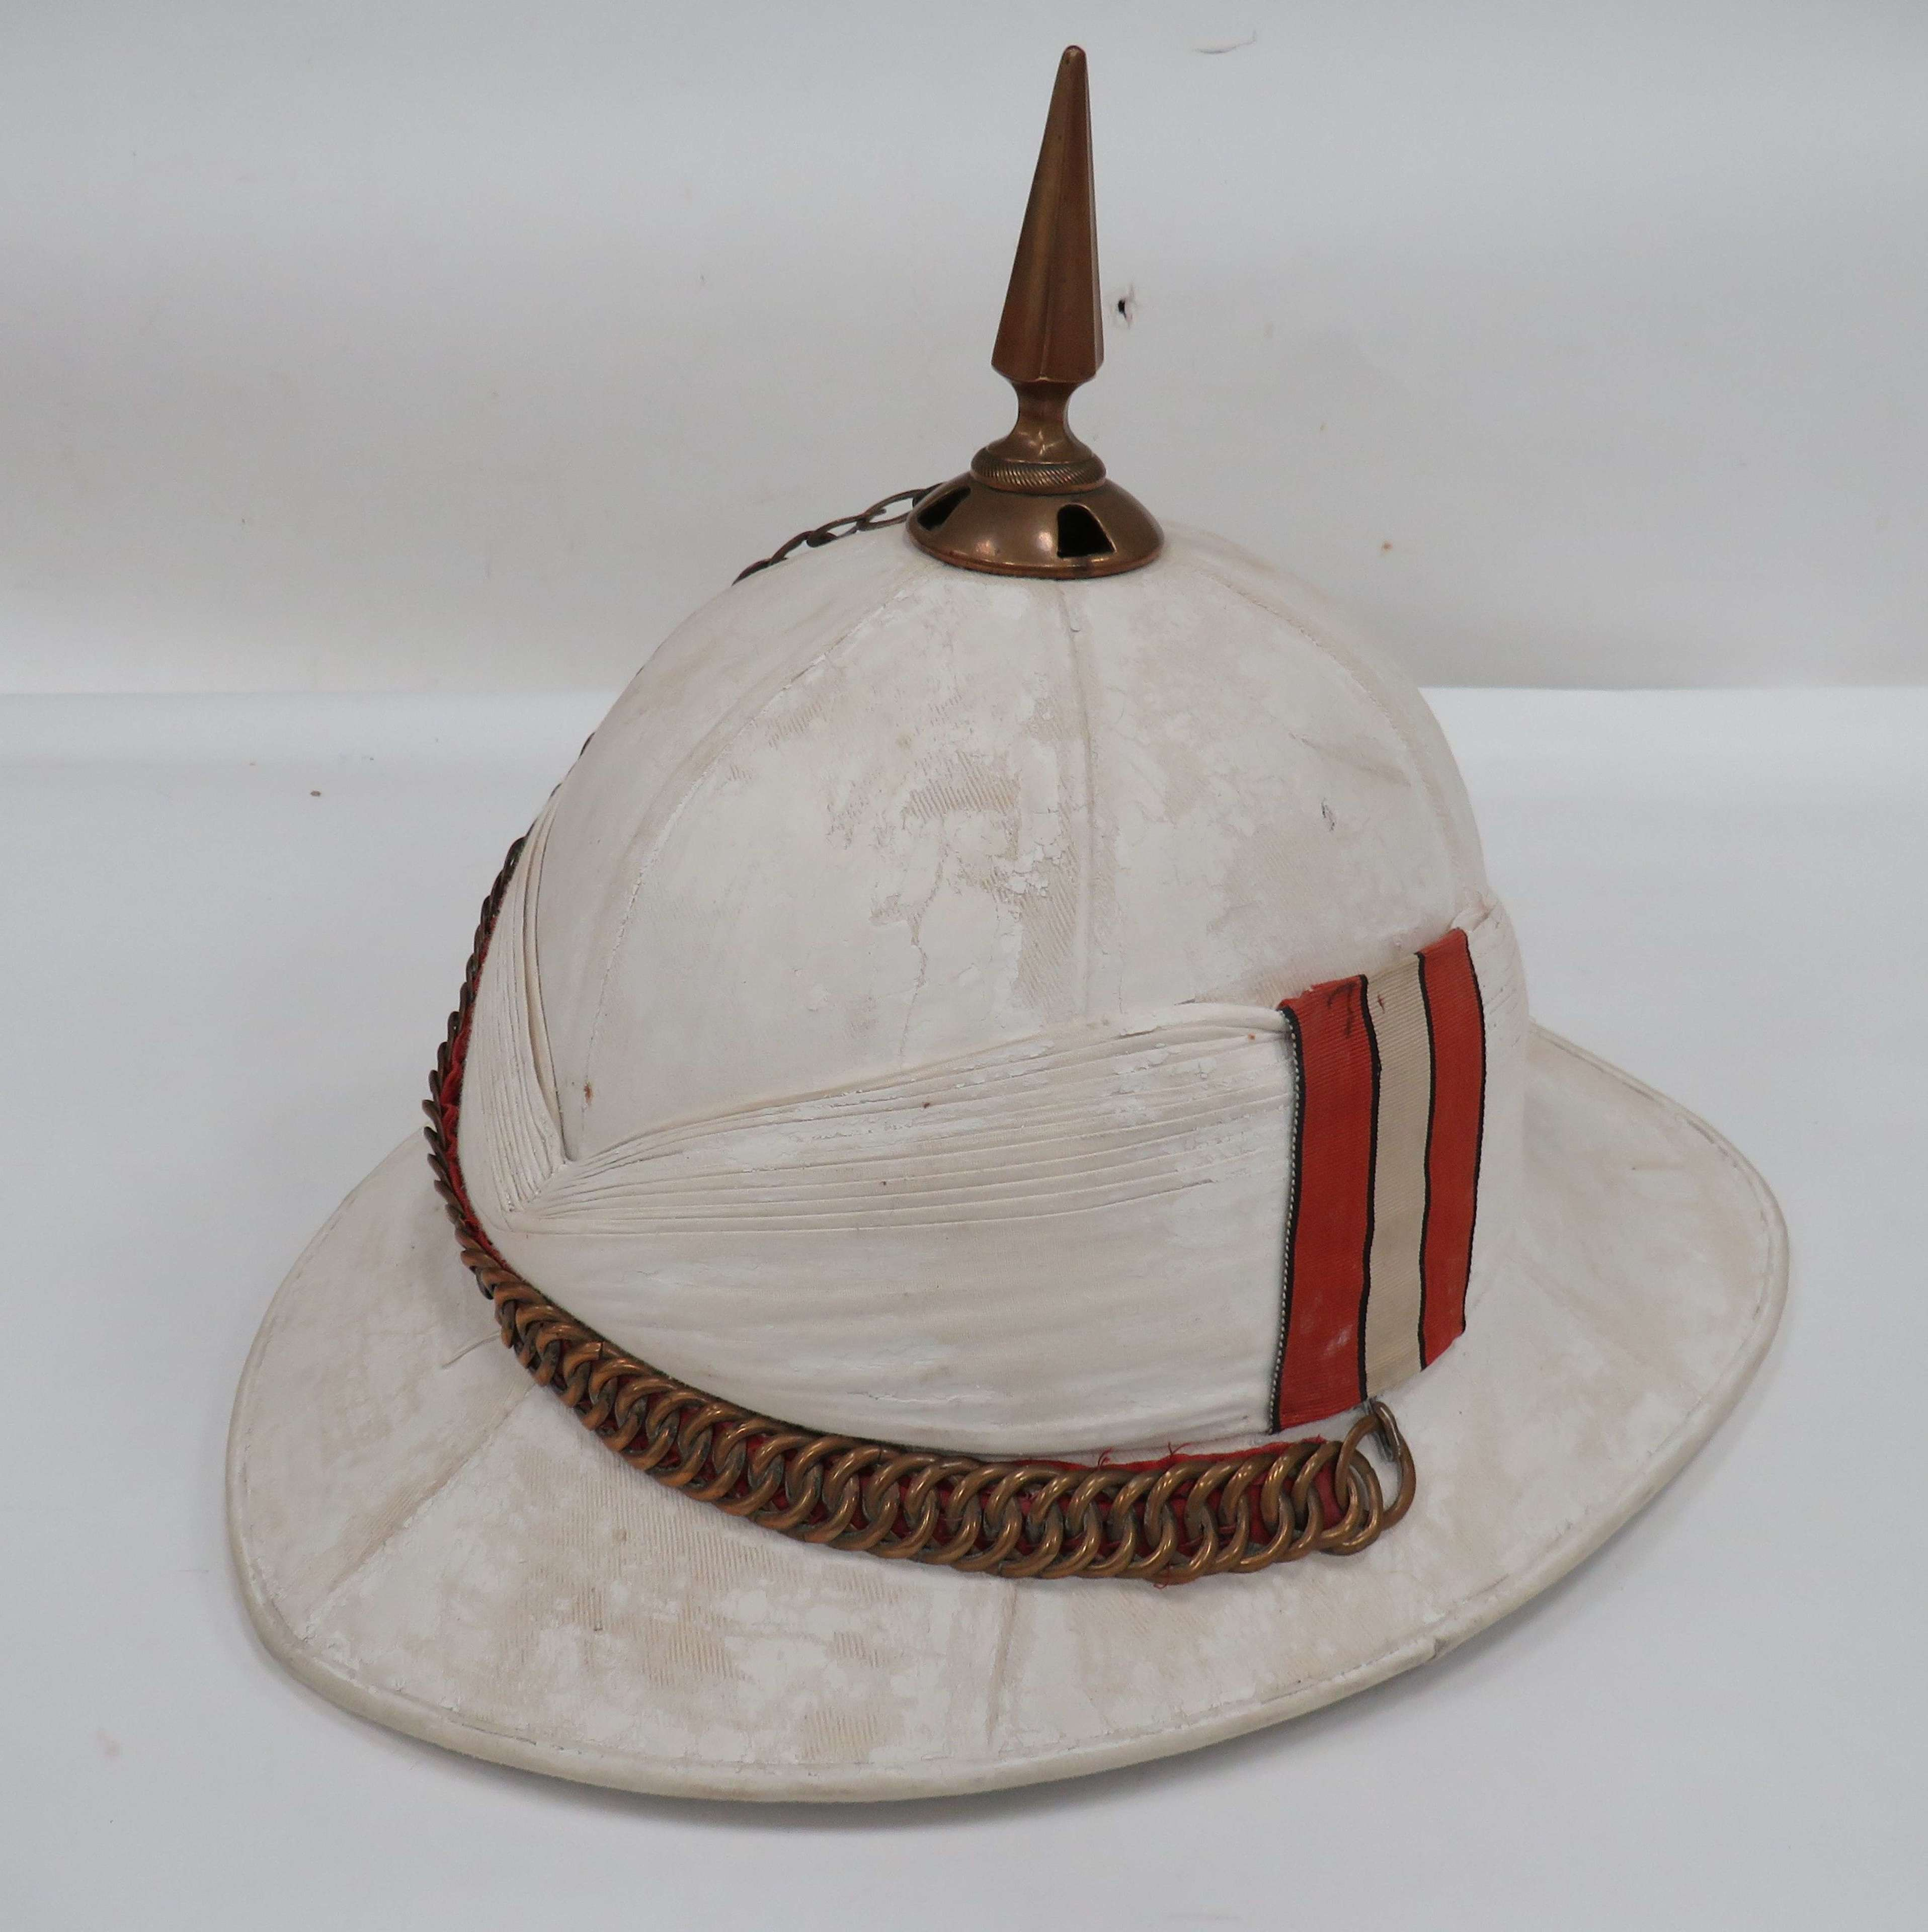 Interwar Foreign Service Dress Helmet